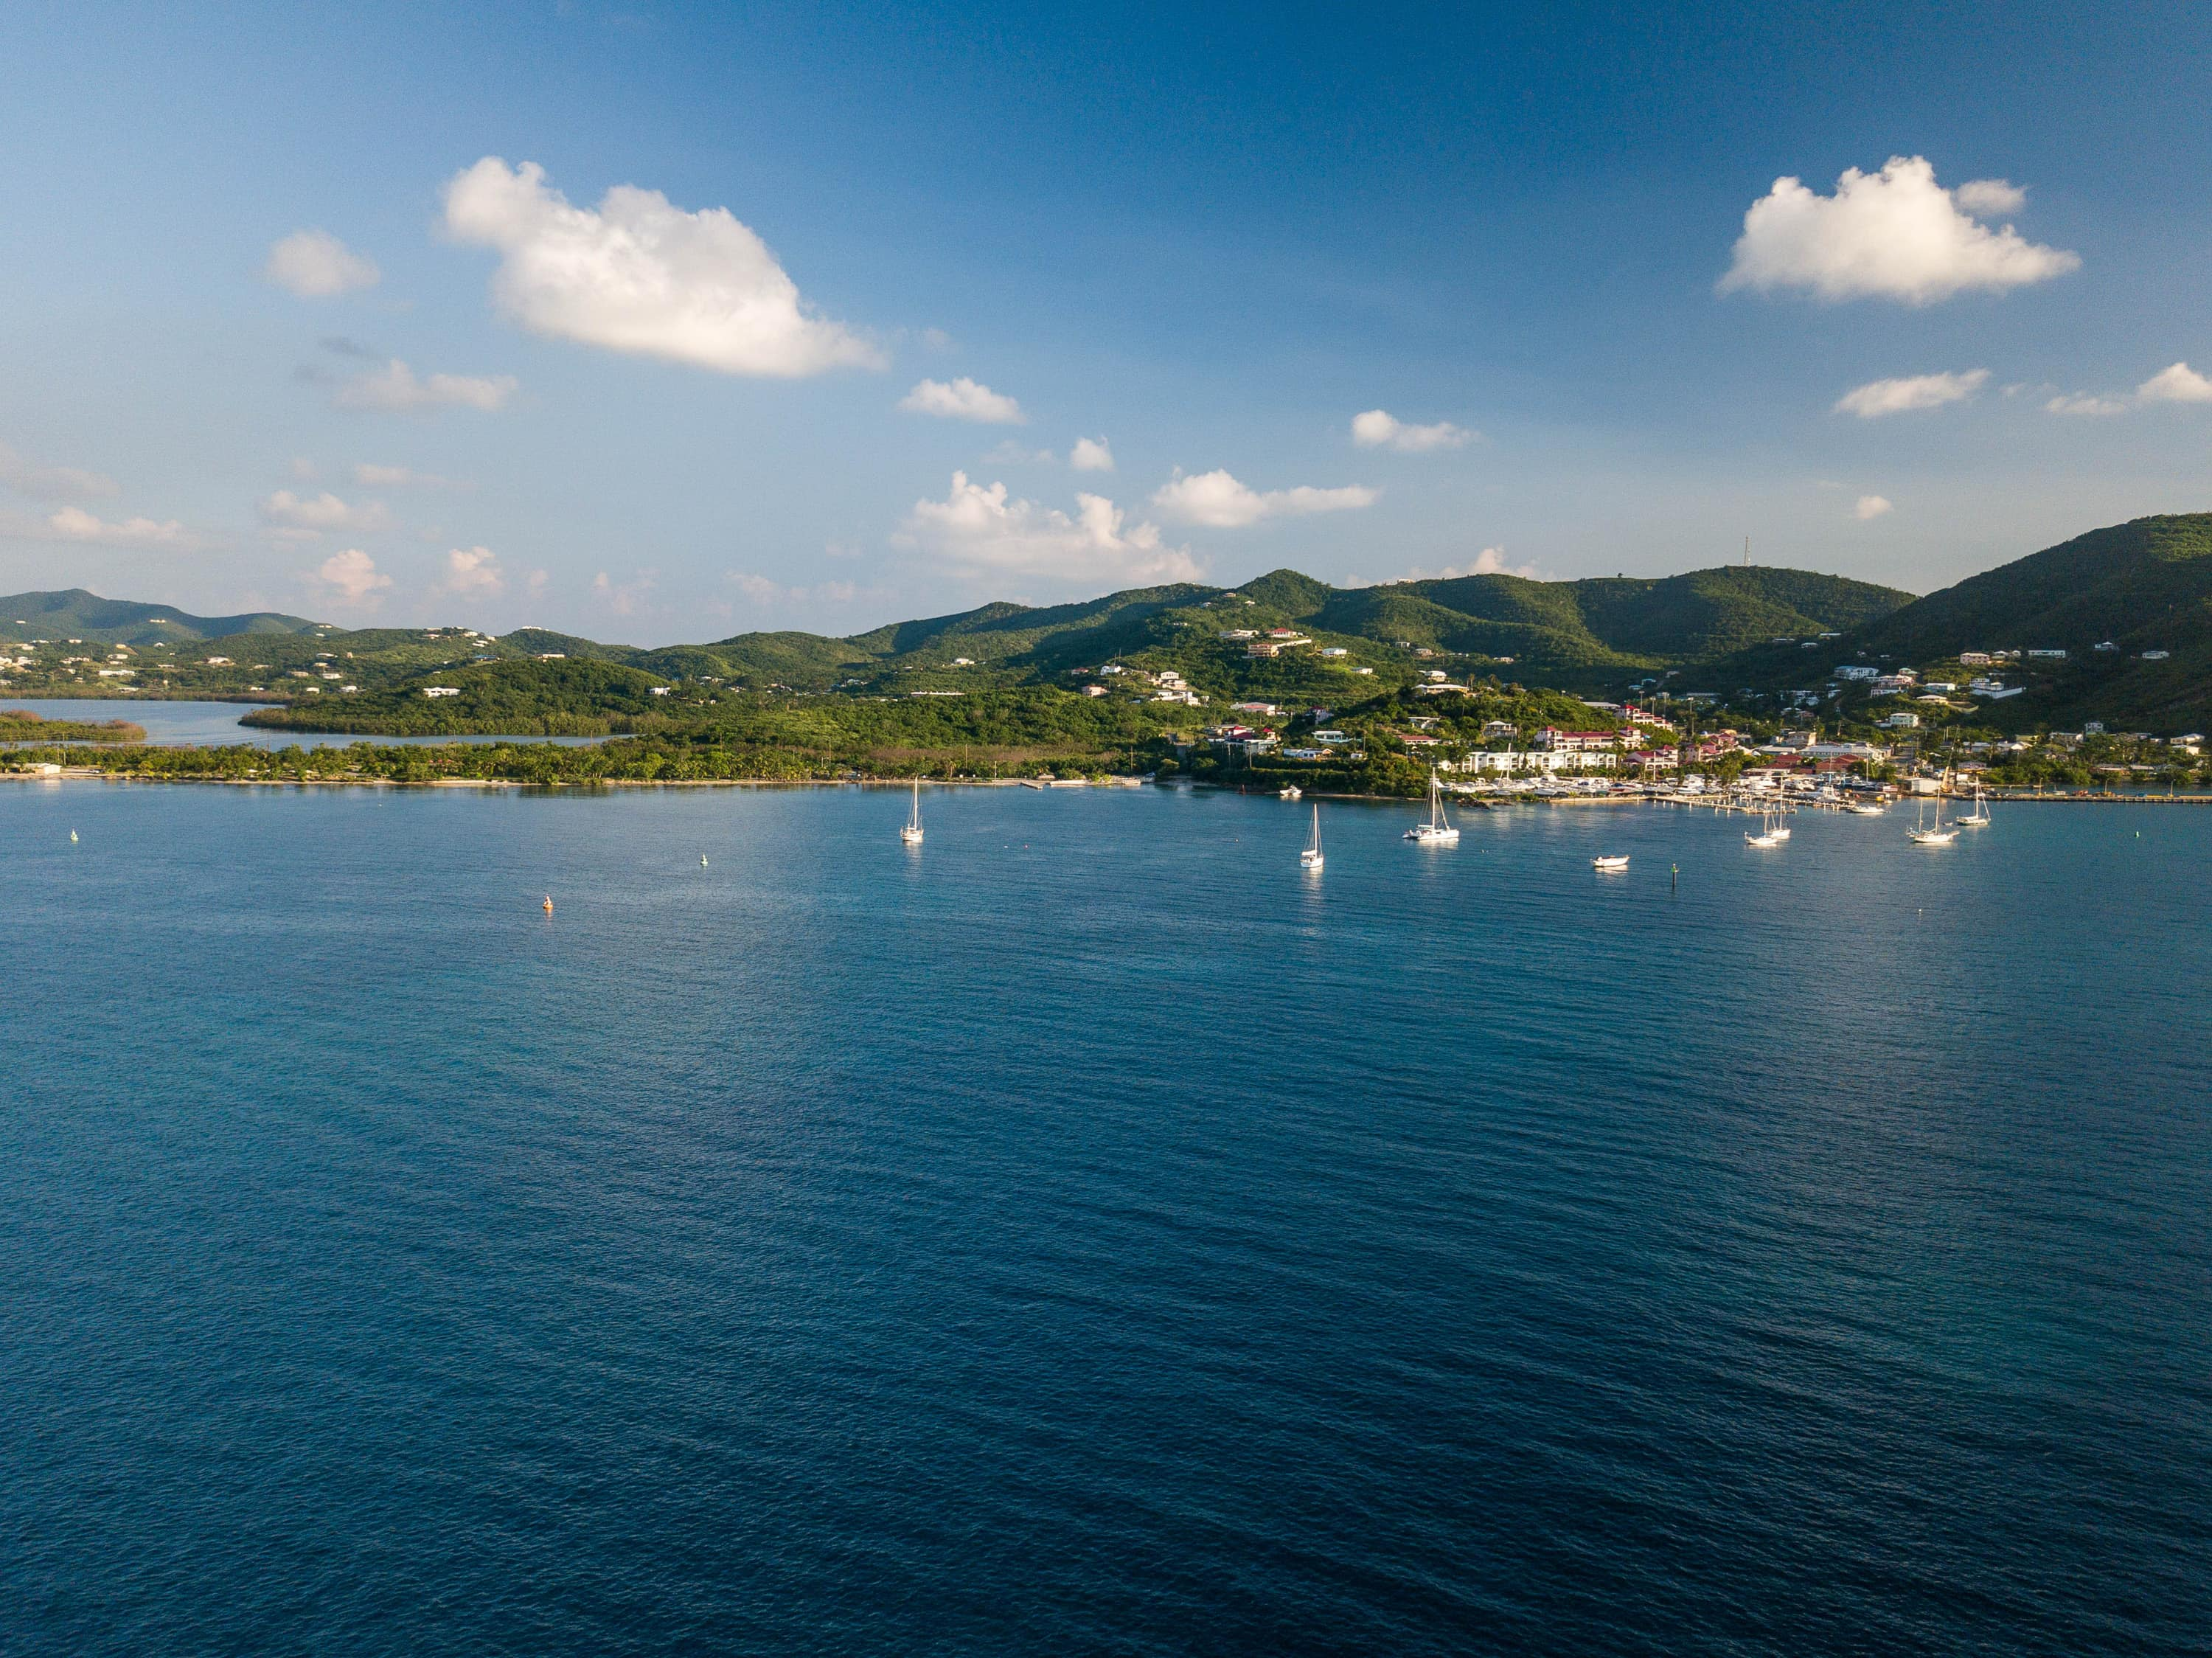 Photo of the Day: Gallows Bay, St. Croix By Seaplane | St. Croix, U.S. Virgin Islands